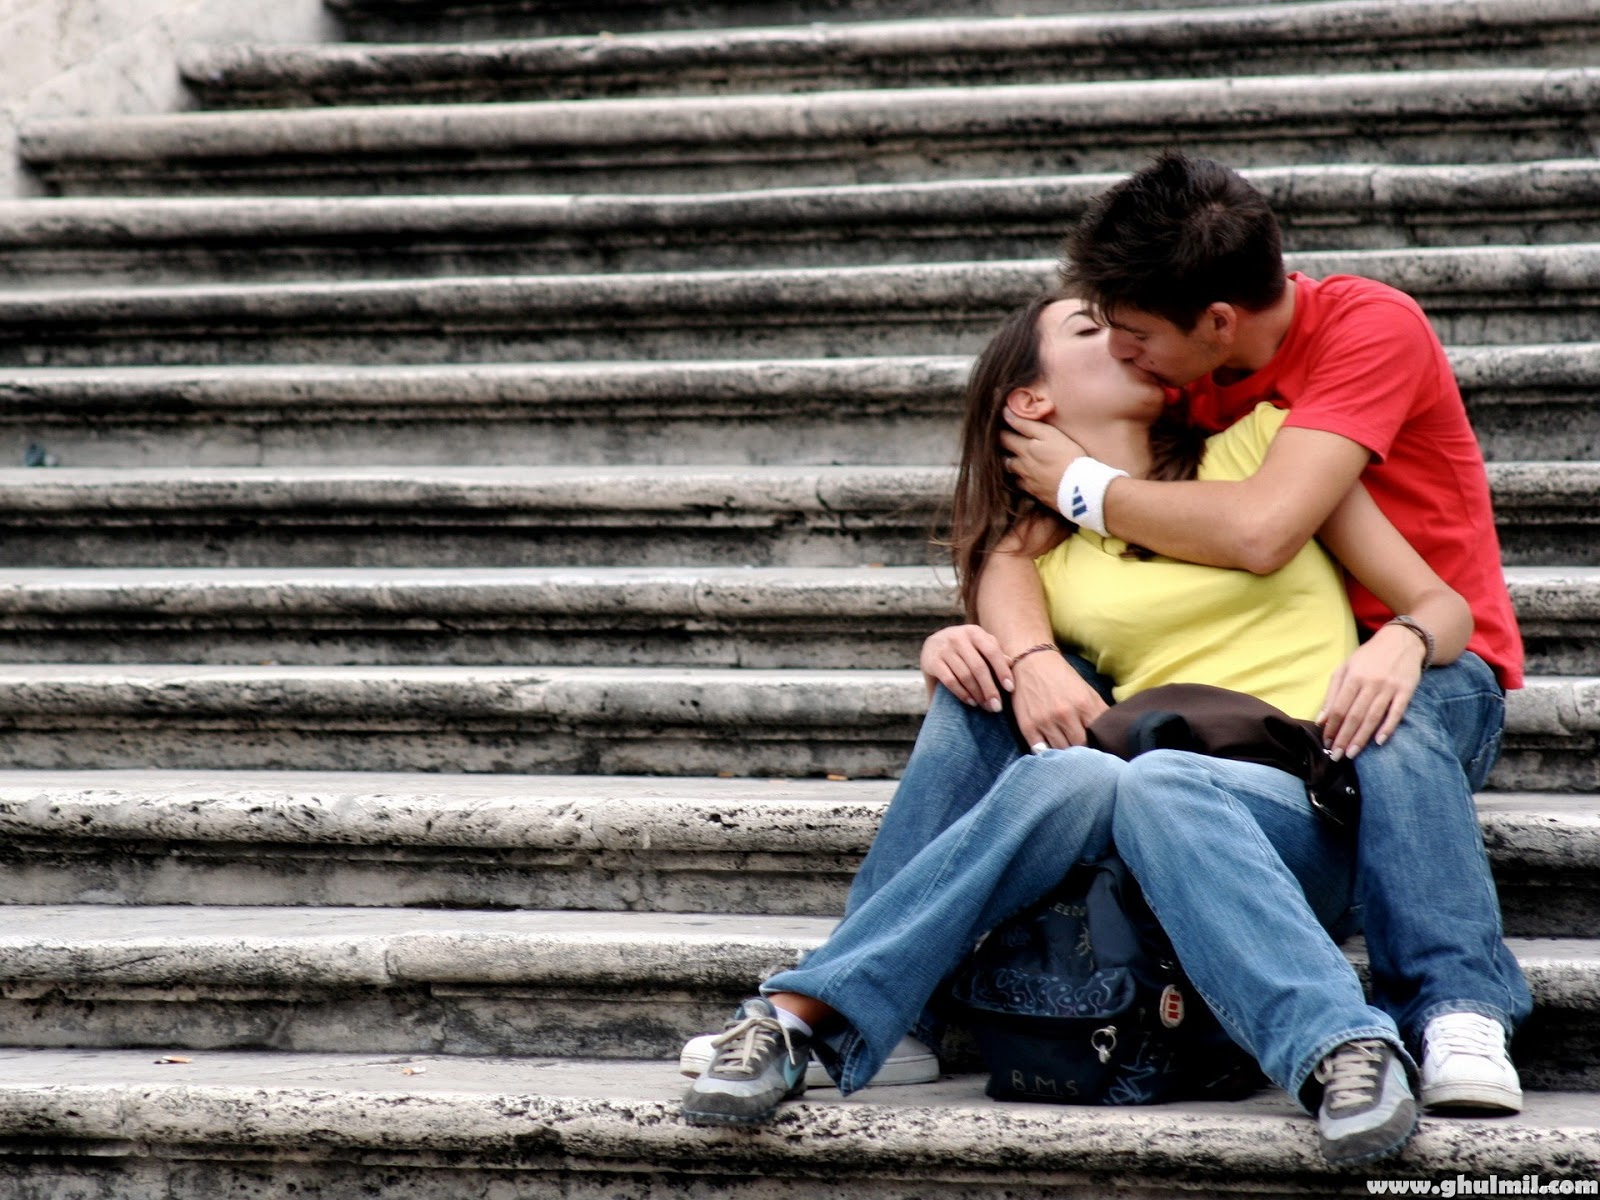 Valentines day Kiss HD wallpaper 2014 Picture and image Valentines 1600x1200